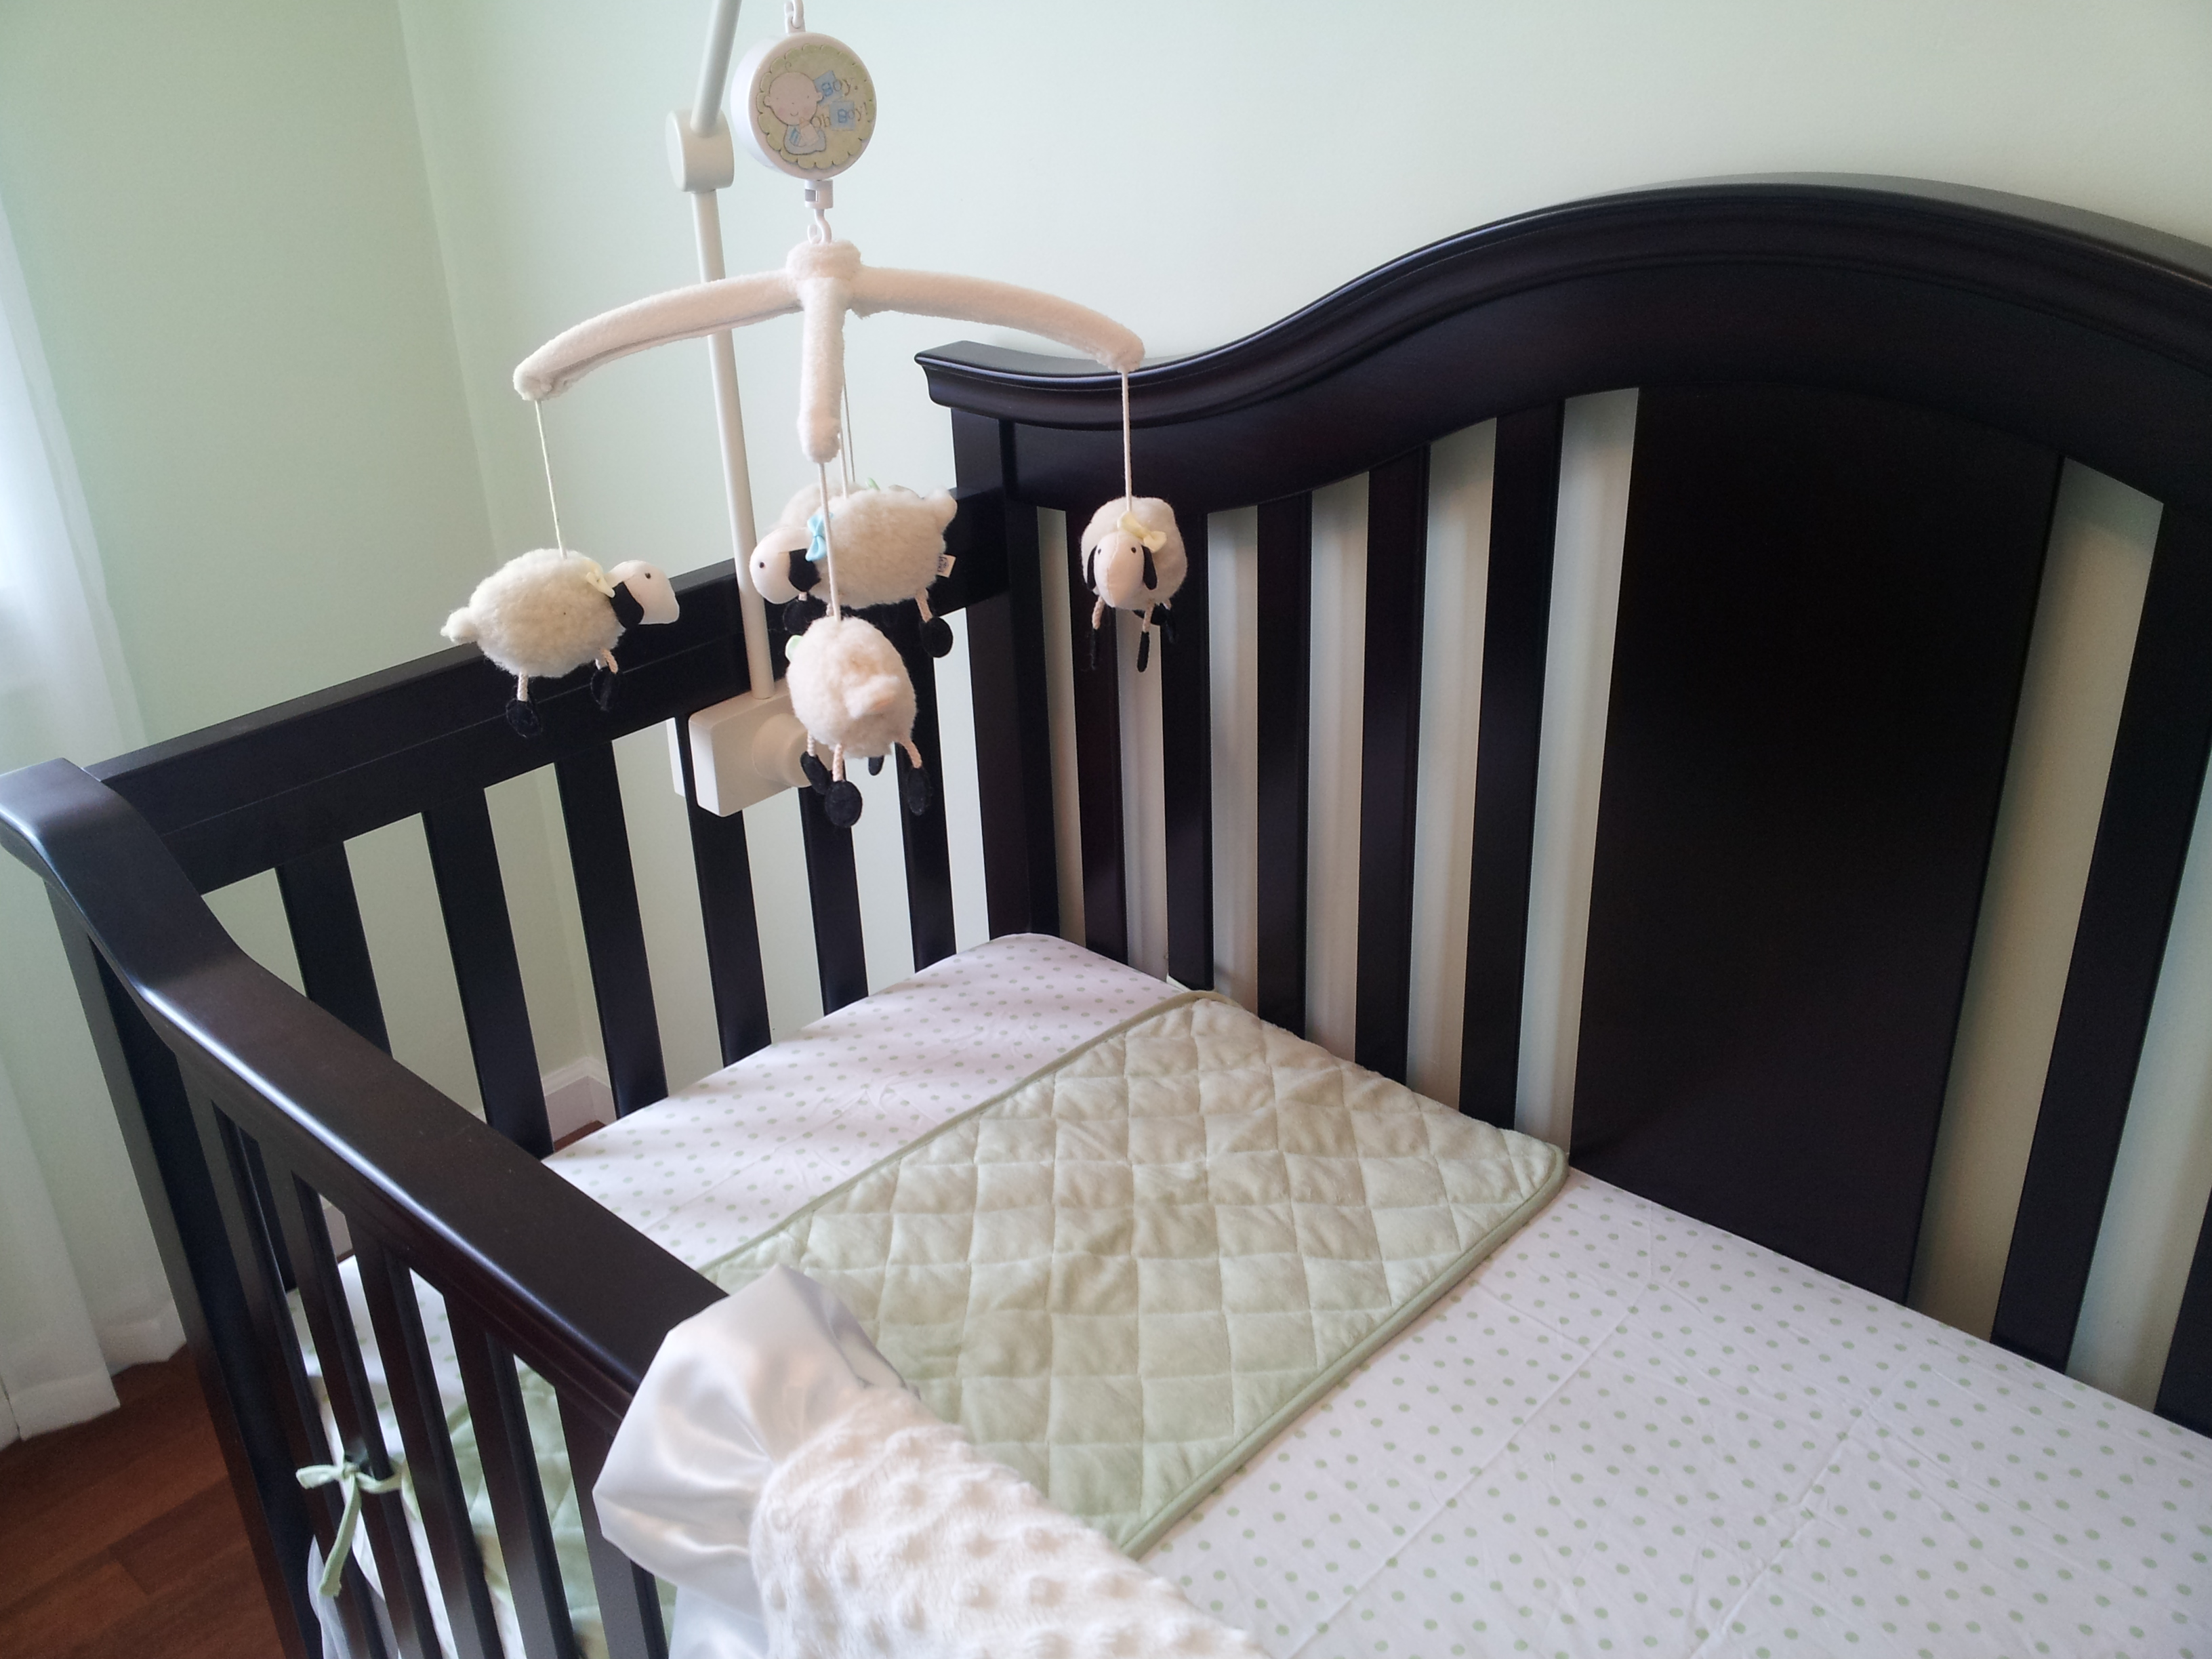 Baby cribs pottery barn - My Sister Purchased This Adorable Crib Mobile From Pottery Barn